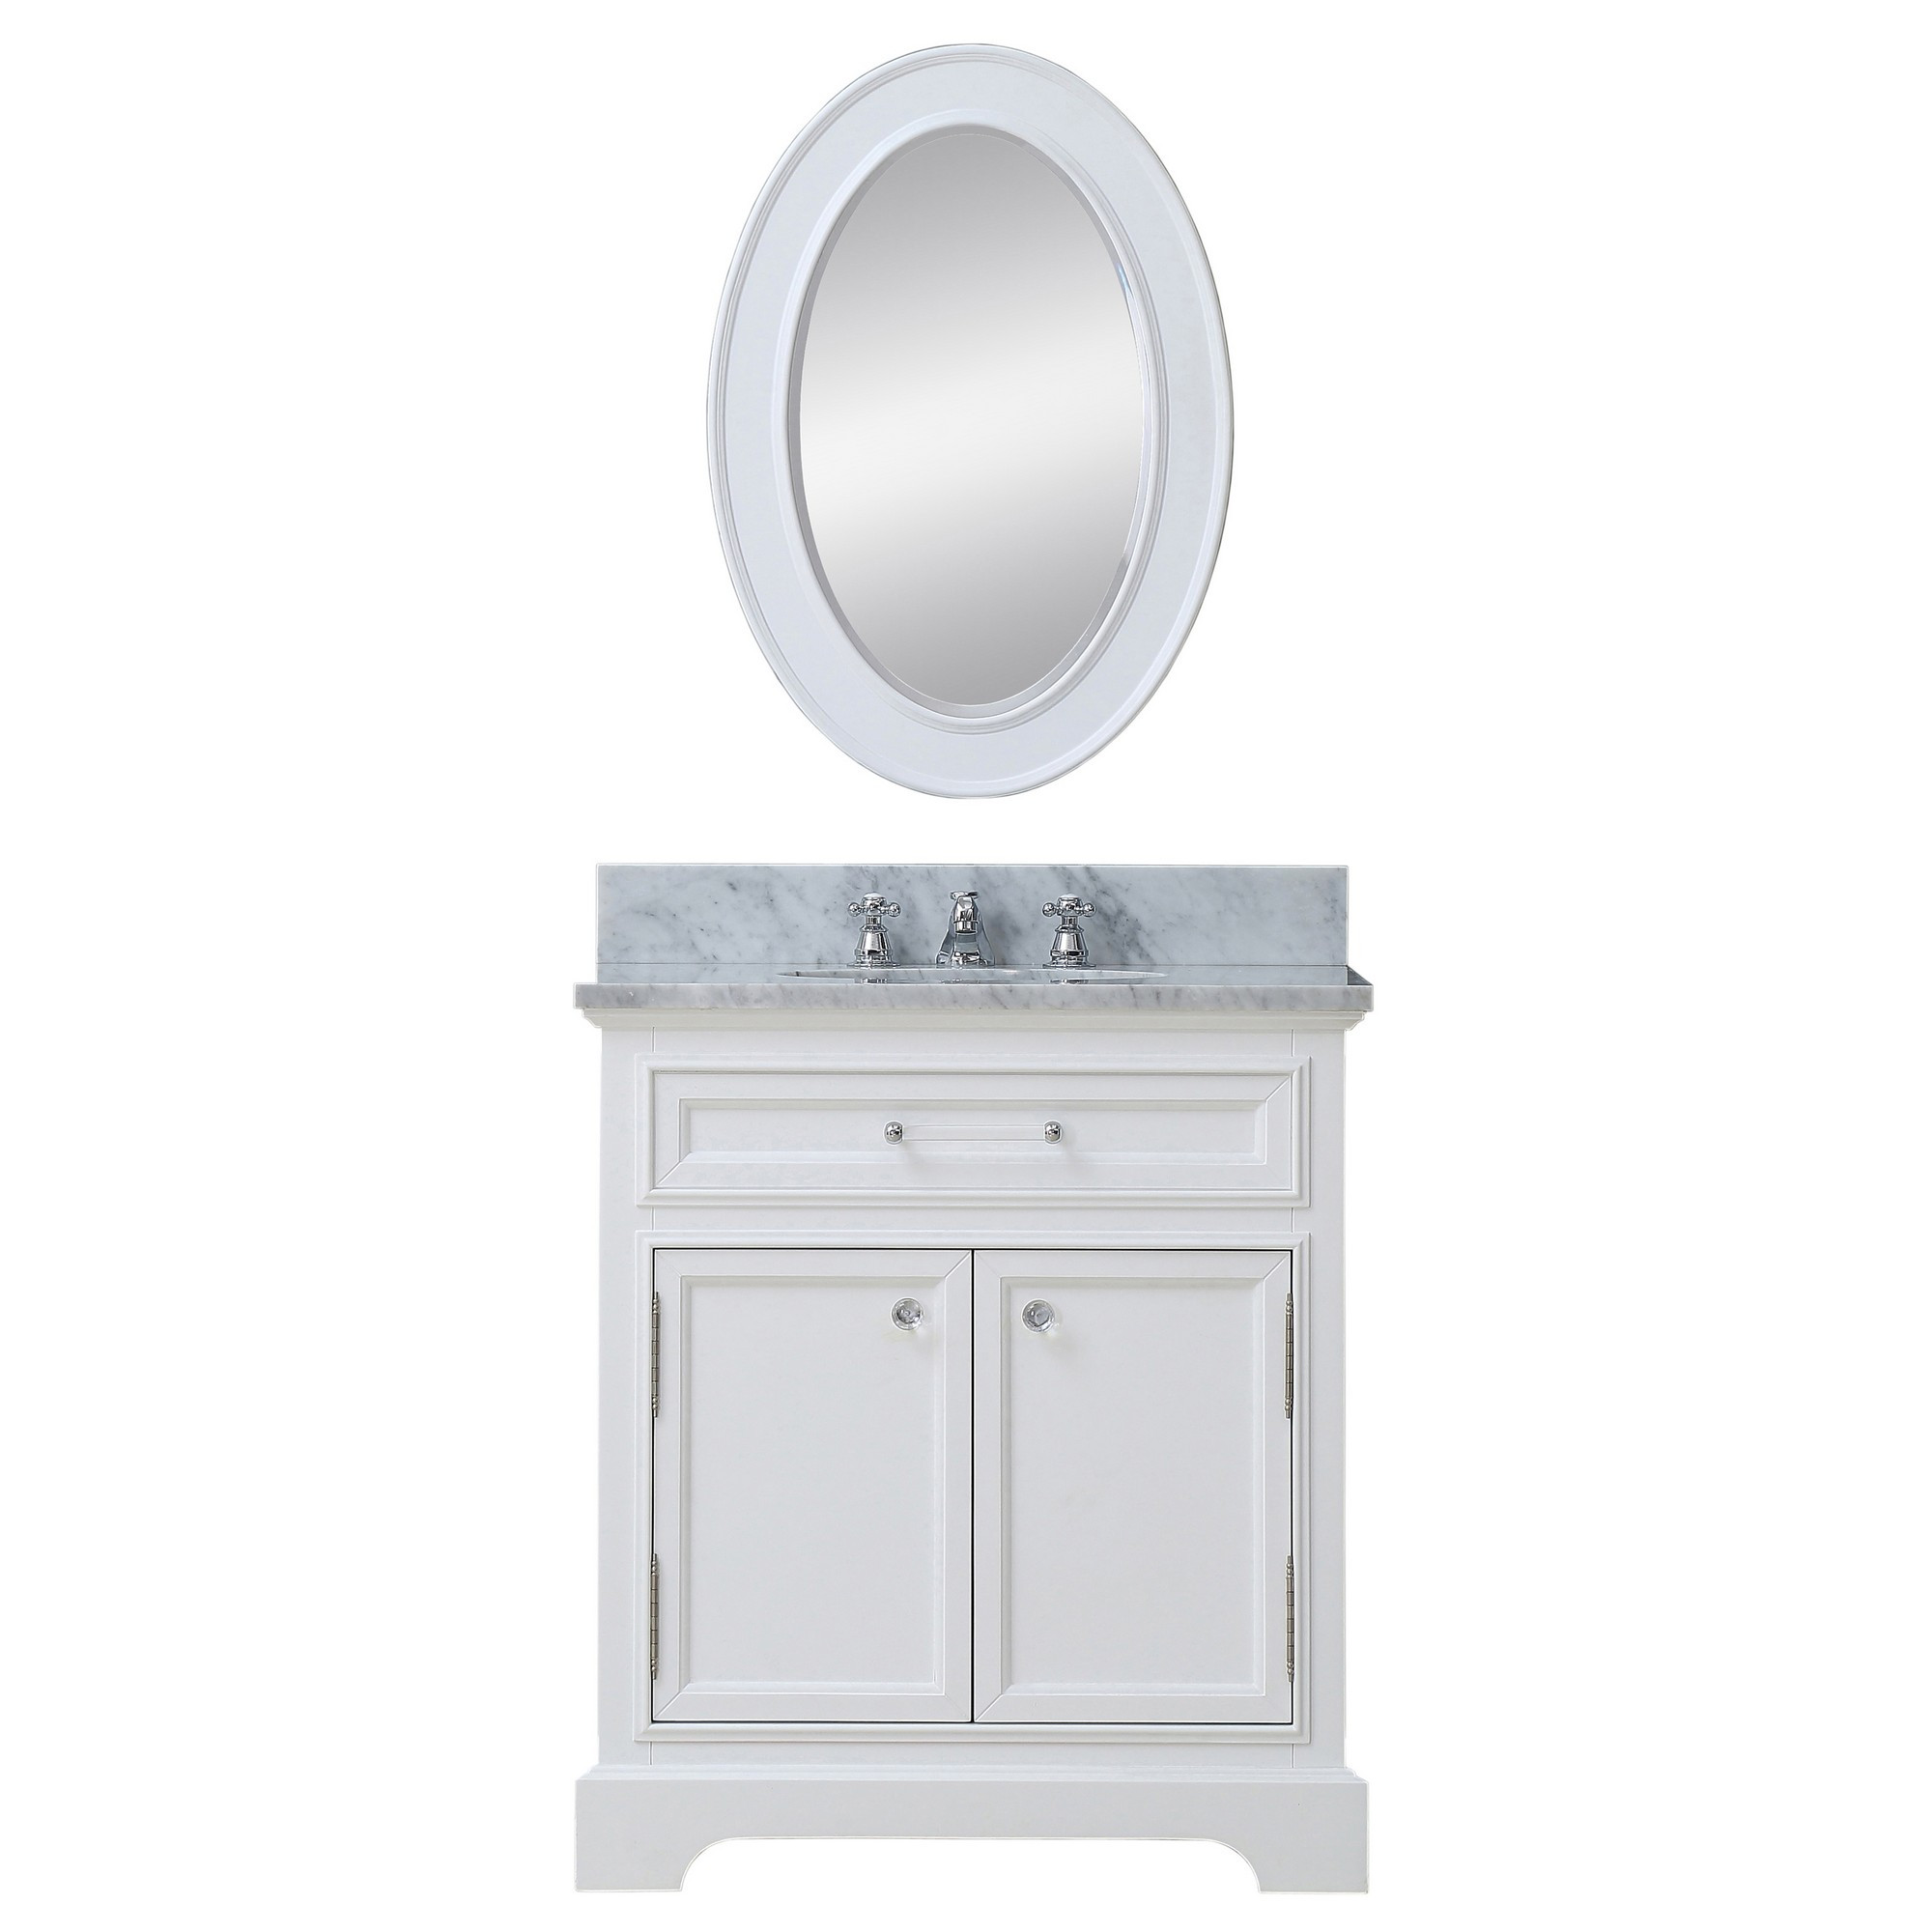 Water Creation Derby 30WBF Bath Vanity With Matching Framed Mirror & Faucet